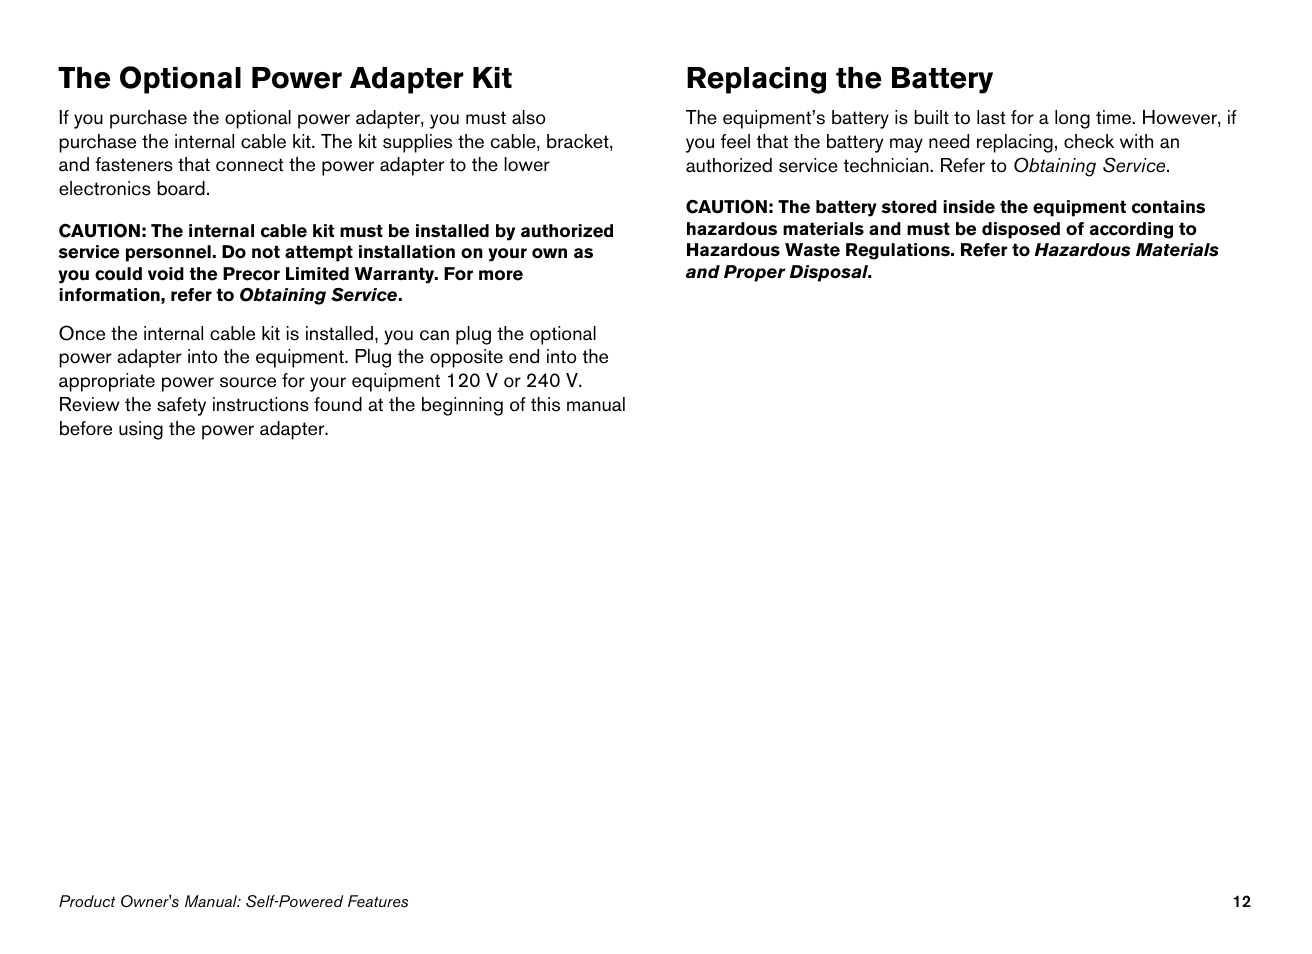 The optional power adapter kit, replacing the battery | precor.